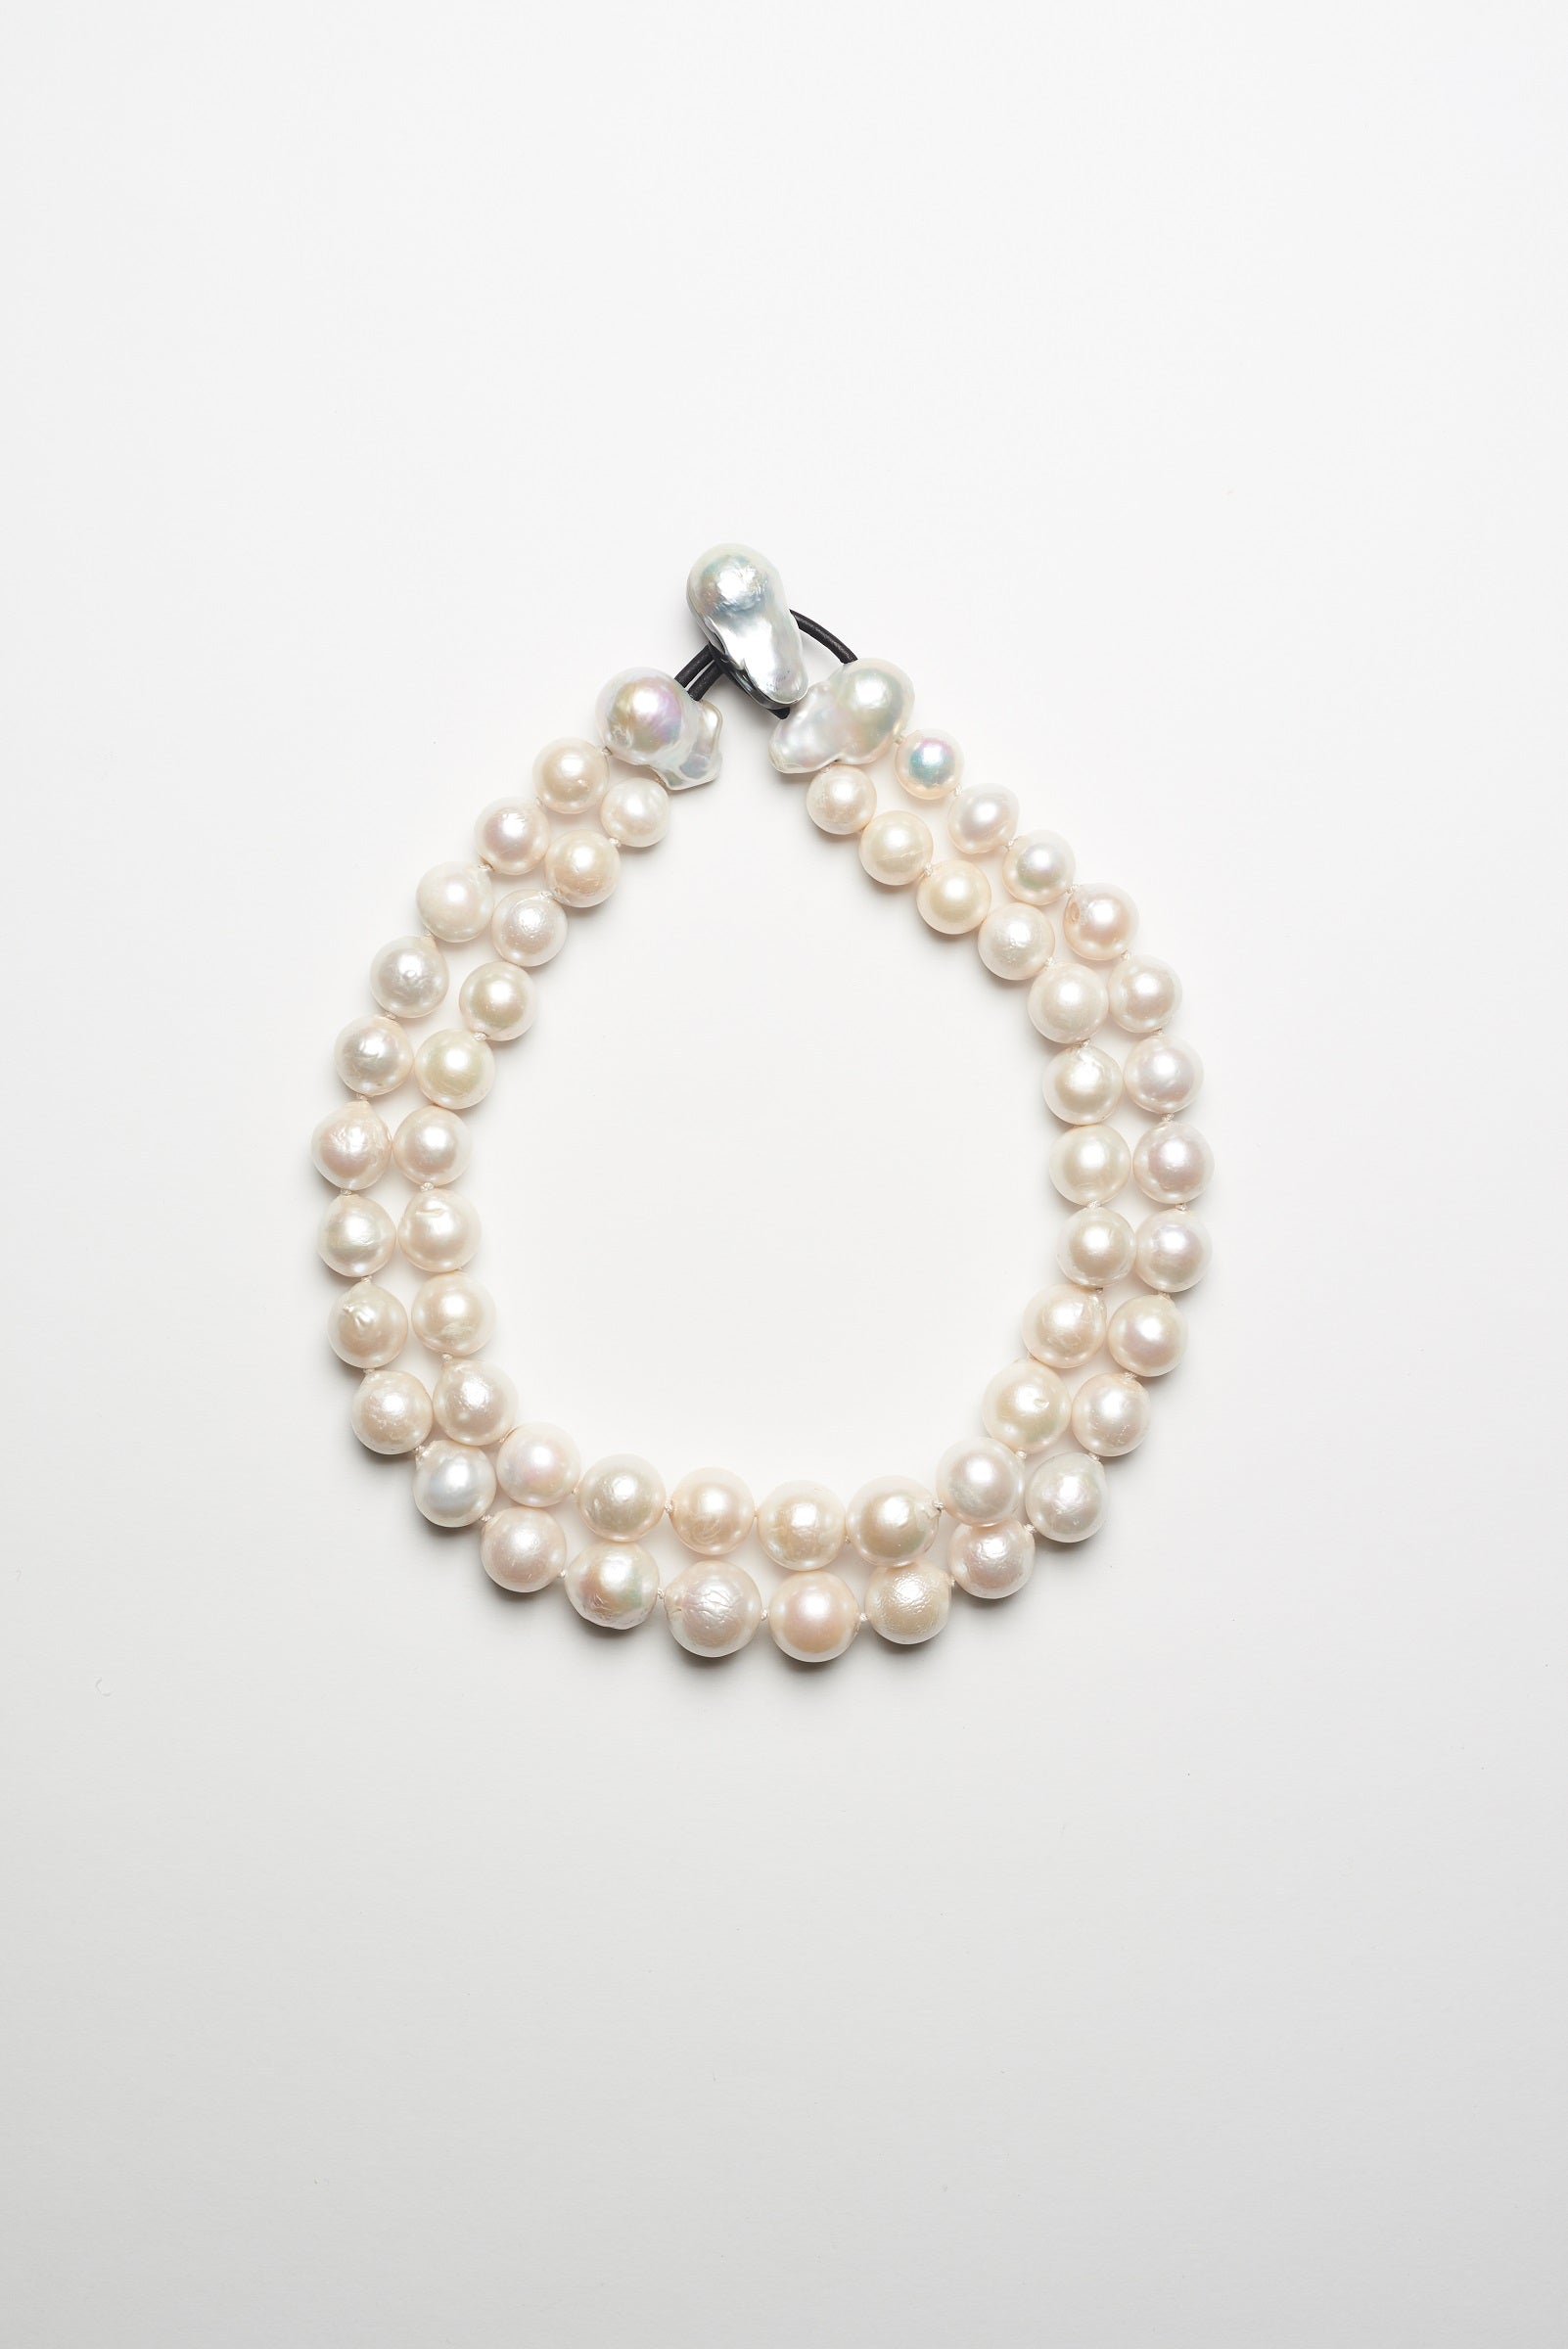 Necklace in fresh water pearls - 2 rows